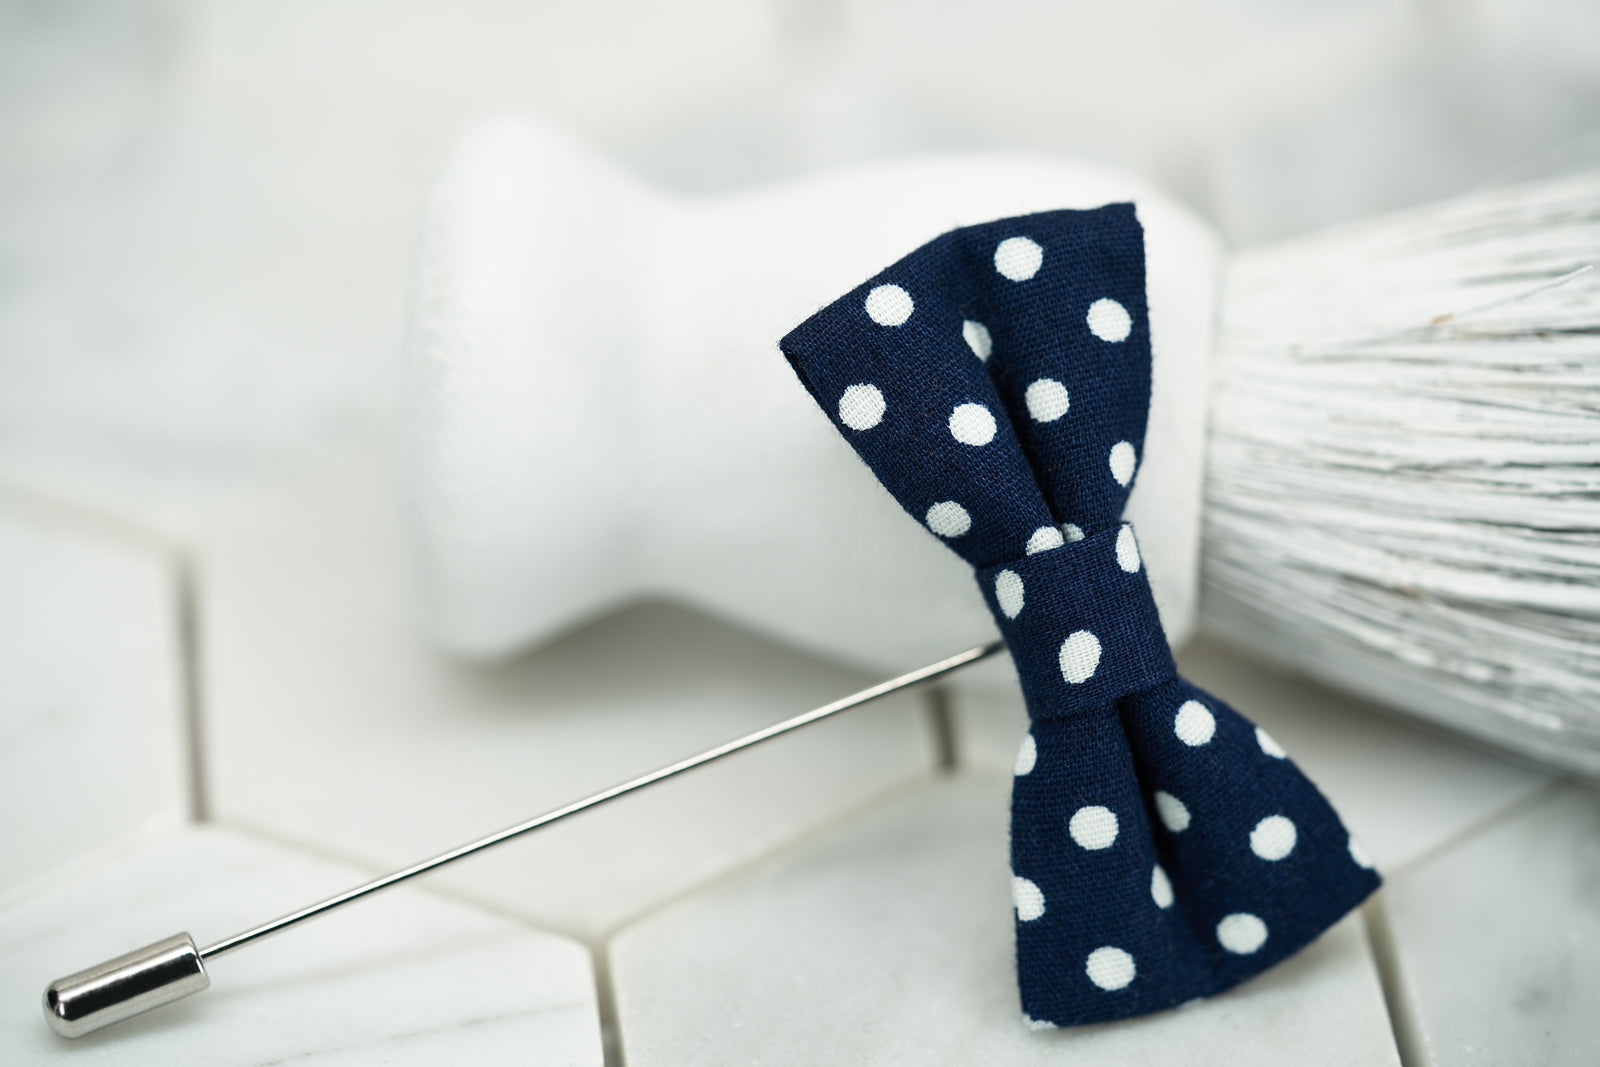 A product image of the navy and blue polka dot lapel pin for men by Dear Martian.